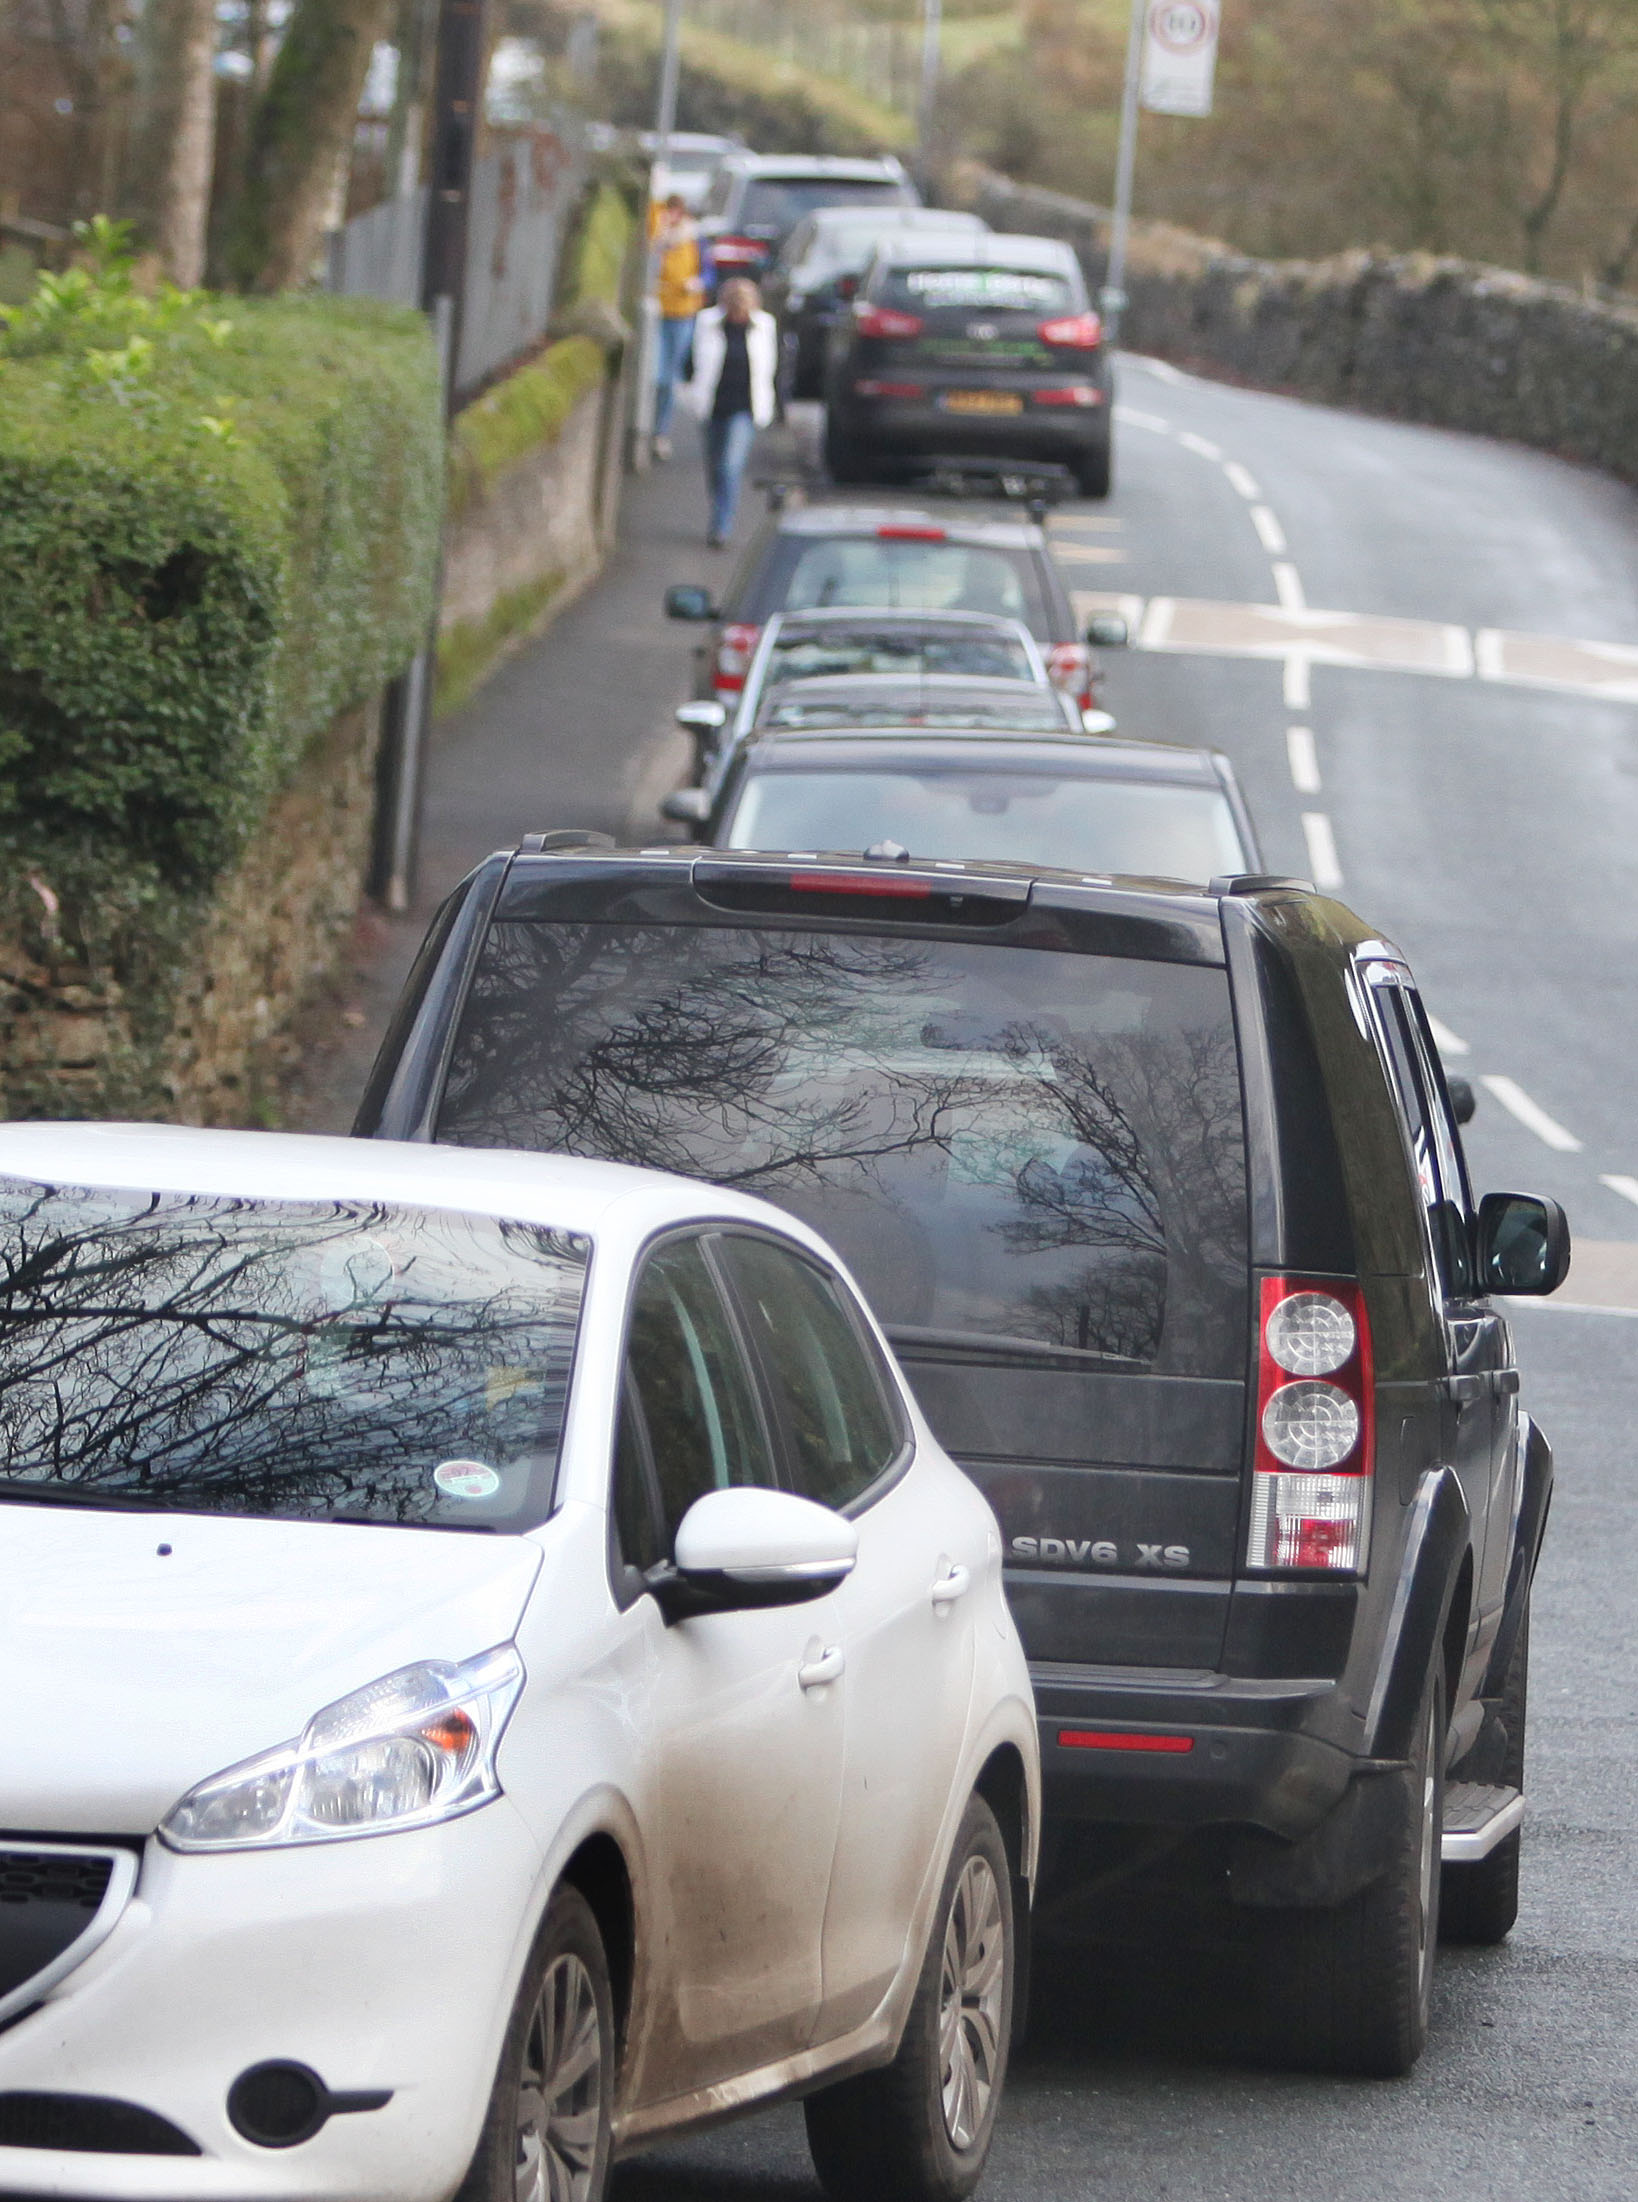 Cars parked near Lothersdale Primary School